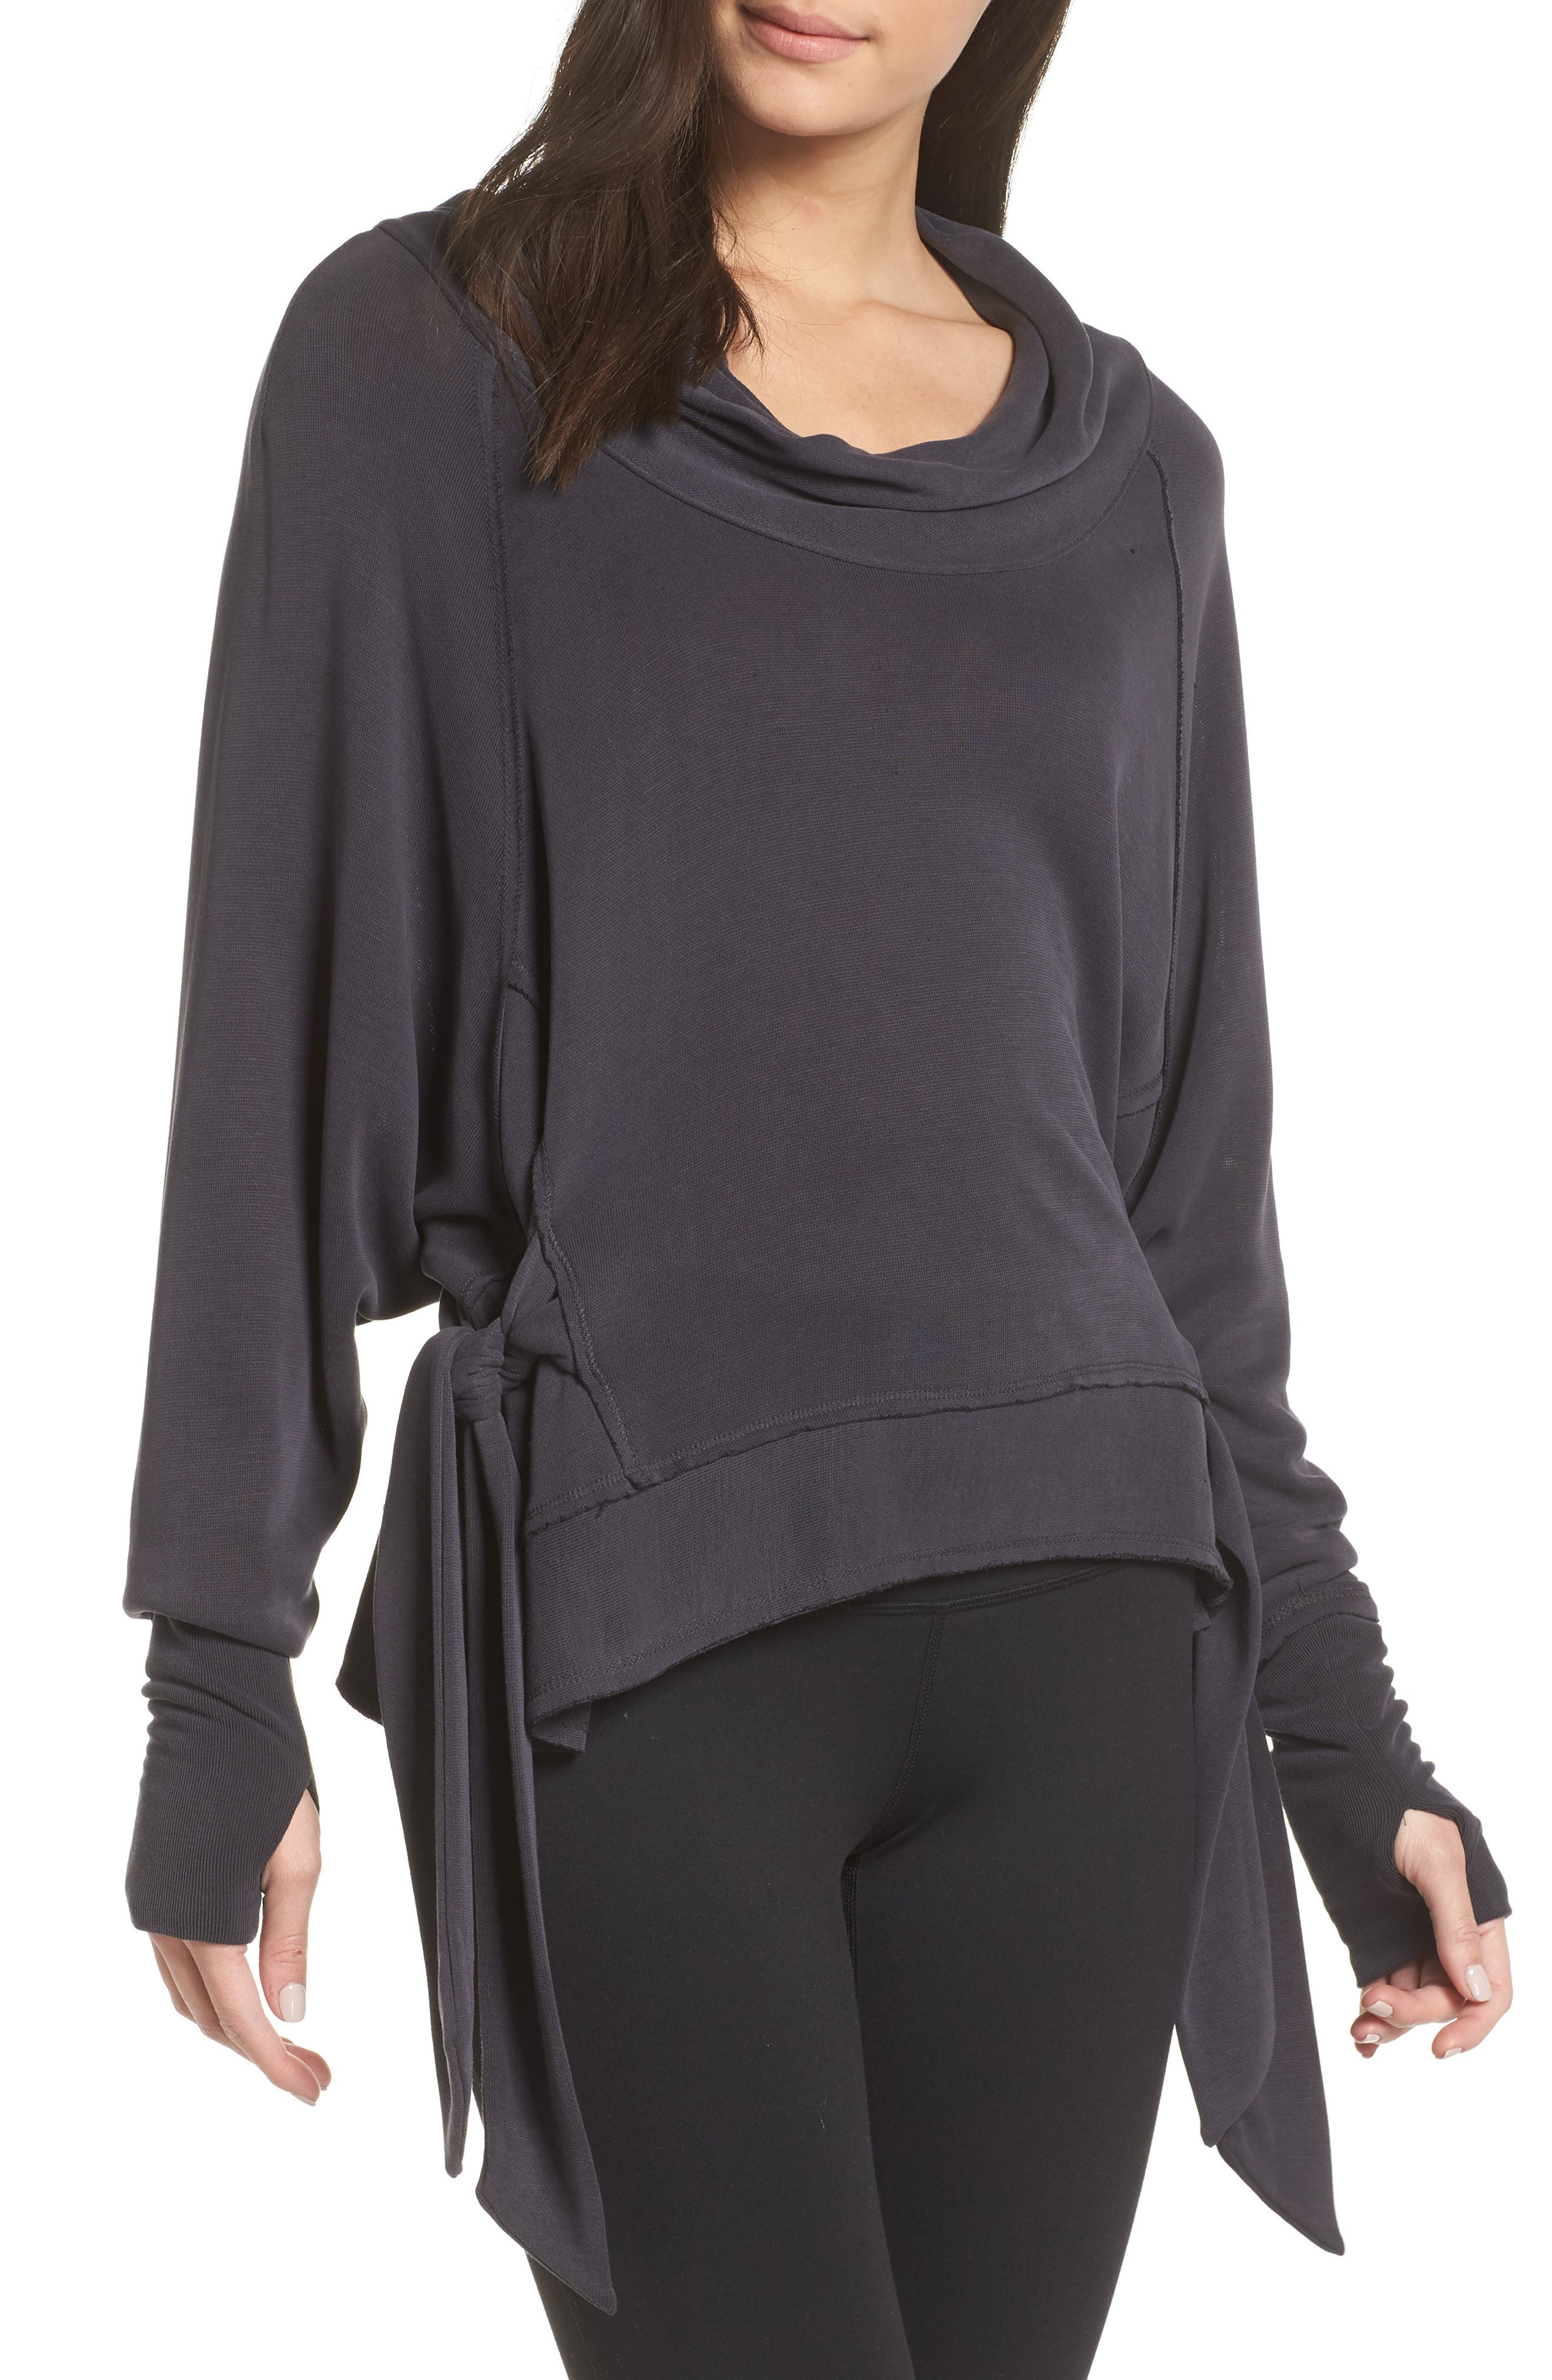 Free People FP Movement Sweet Flow Pullover Sweater,                             Main thumbnail 1, color,                             BLACK